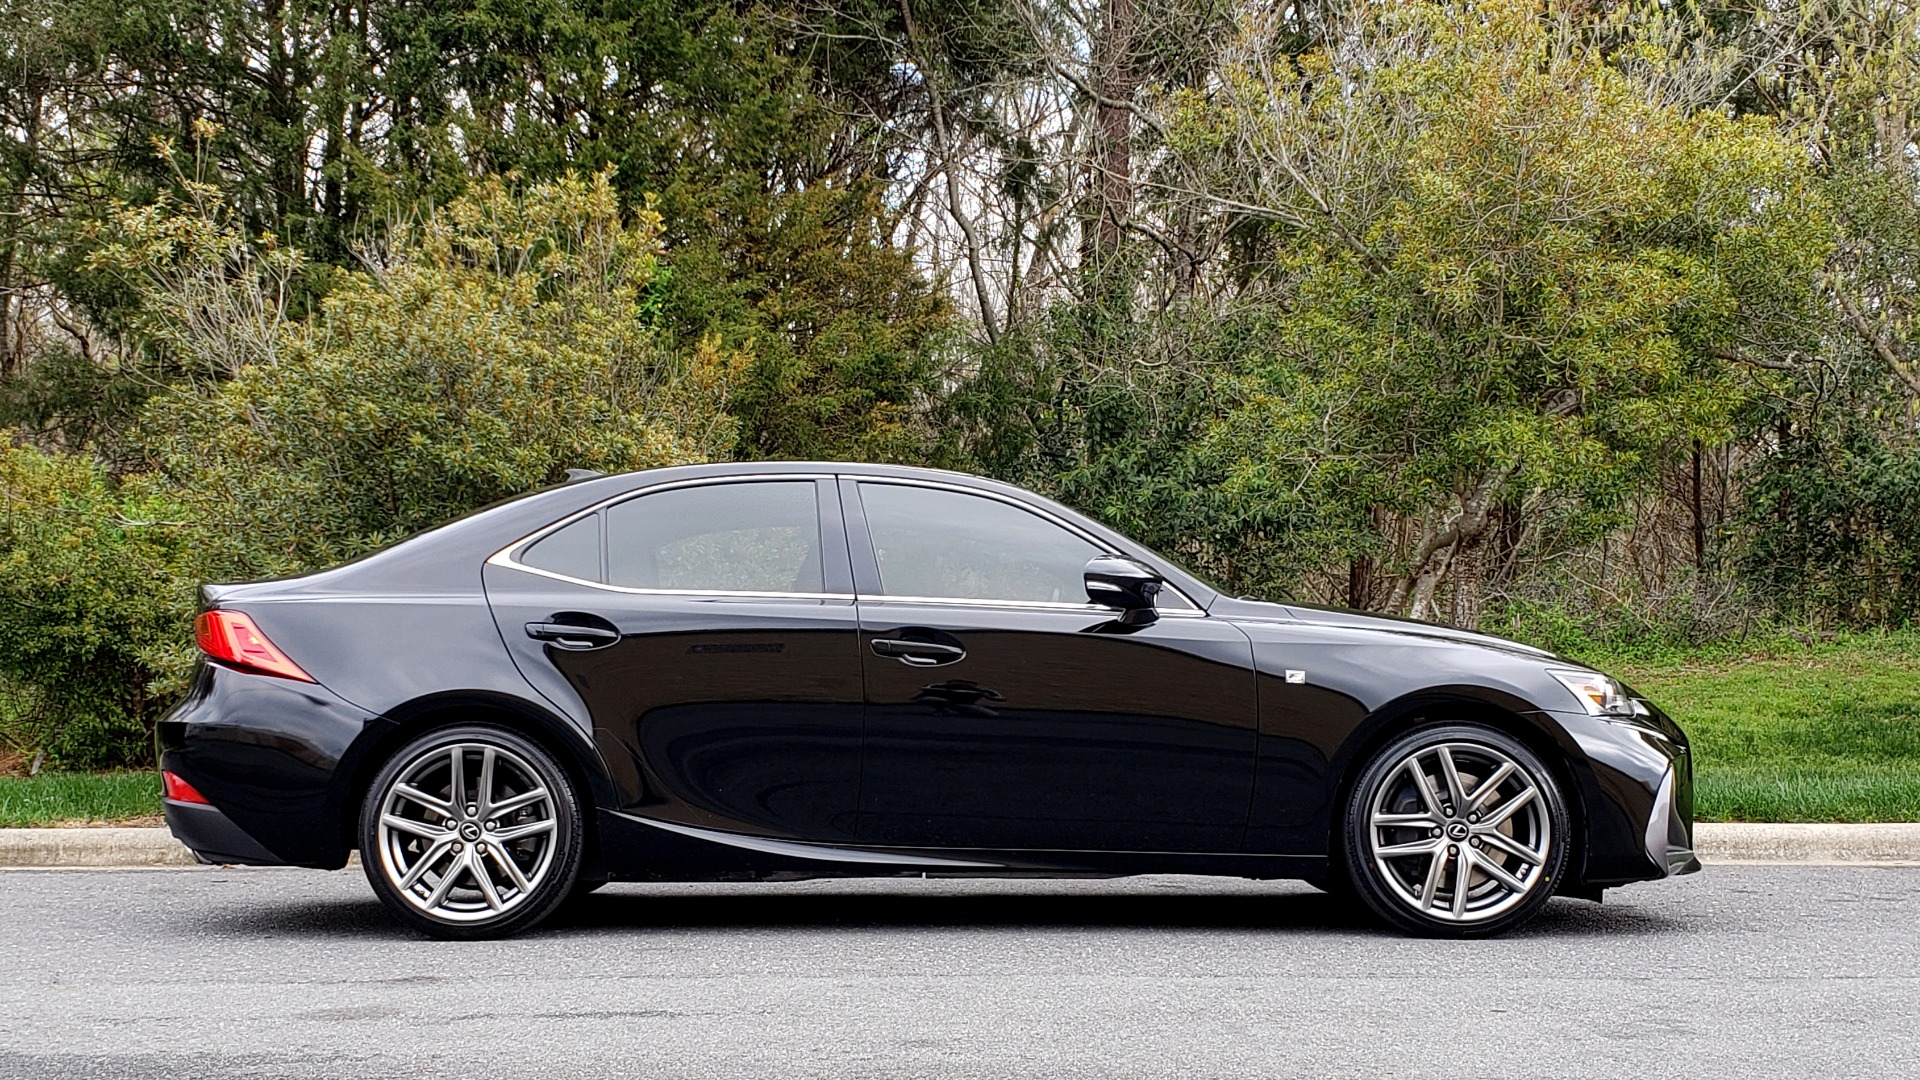 Used 2017 Lexus IS 200T F-SPORT / SUNROOF / REARVIEW / VENT SEATS for sale Sold at Formula Imports in Charlotte NC 28227 5